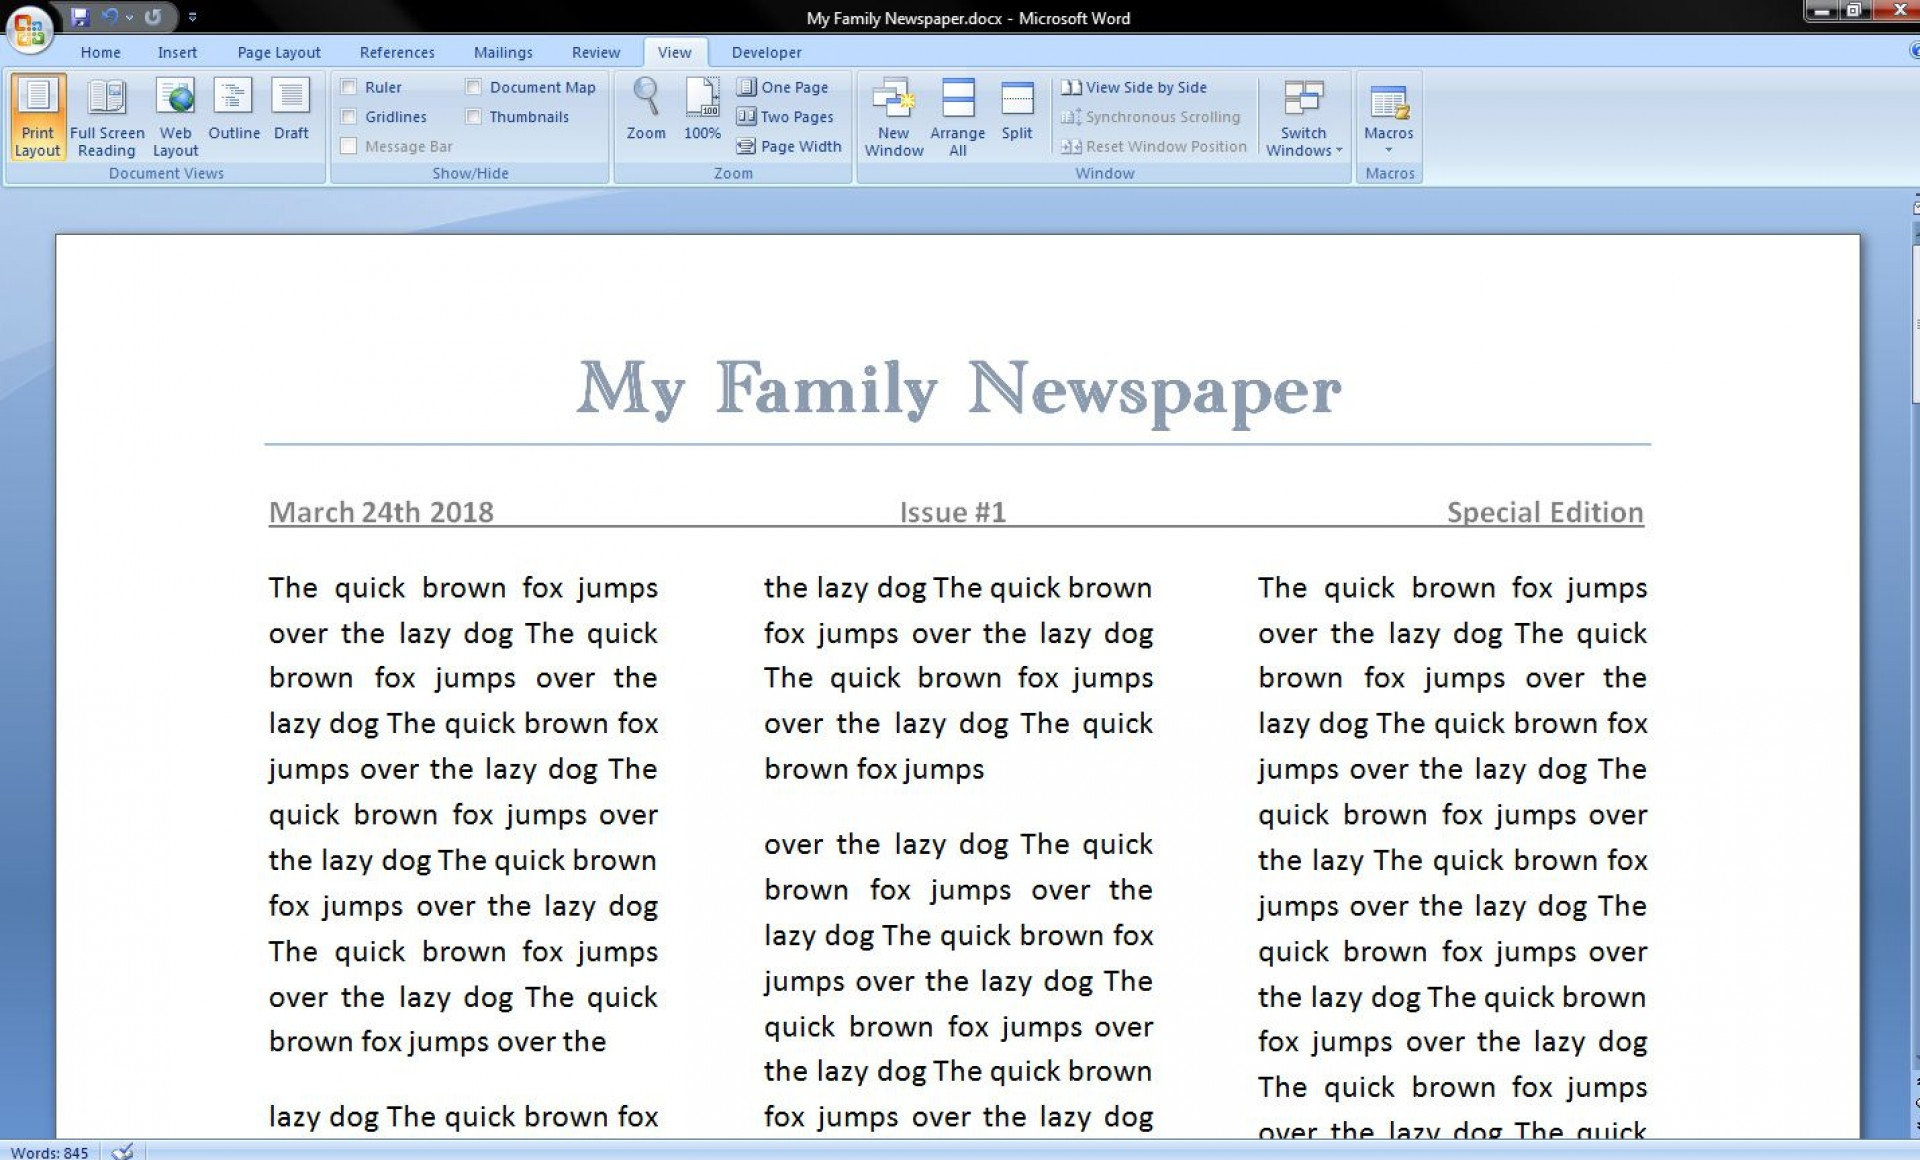 006 Best Microsoft Word Newspaper Template Example  Vintage Old Fashioned1920